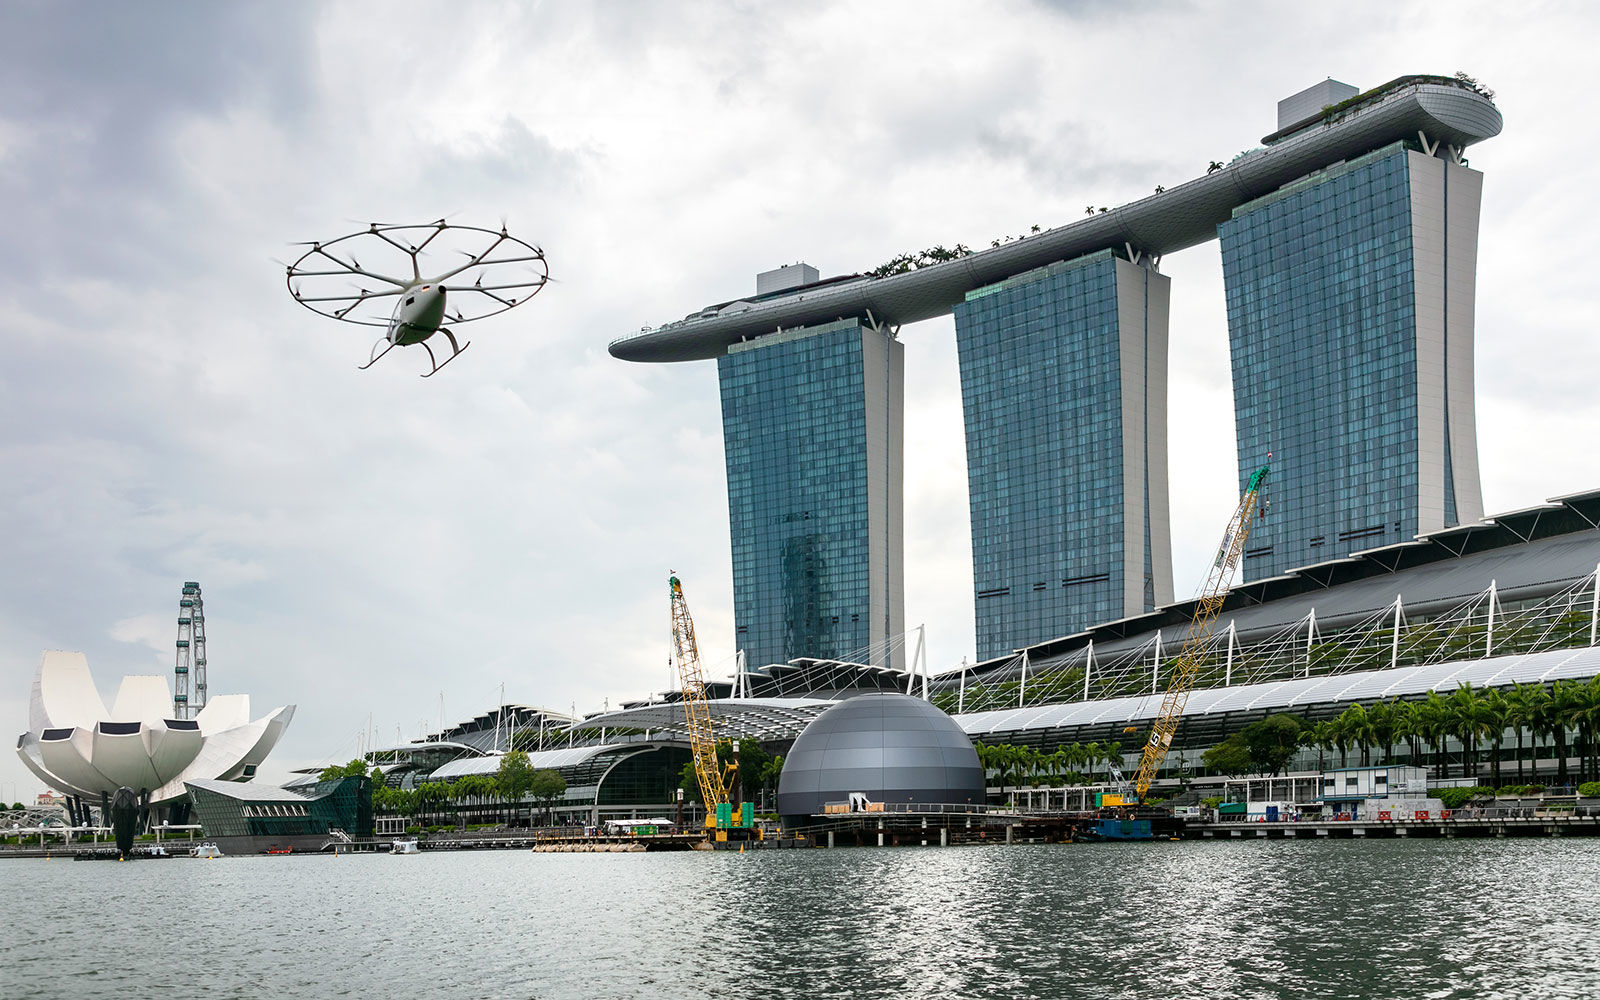 Volocopter's VoloDrone Is A Massive Utility Drone That Can Carry 200 Kgs